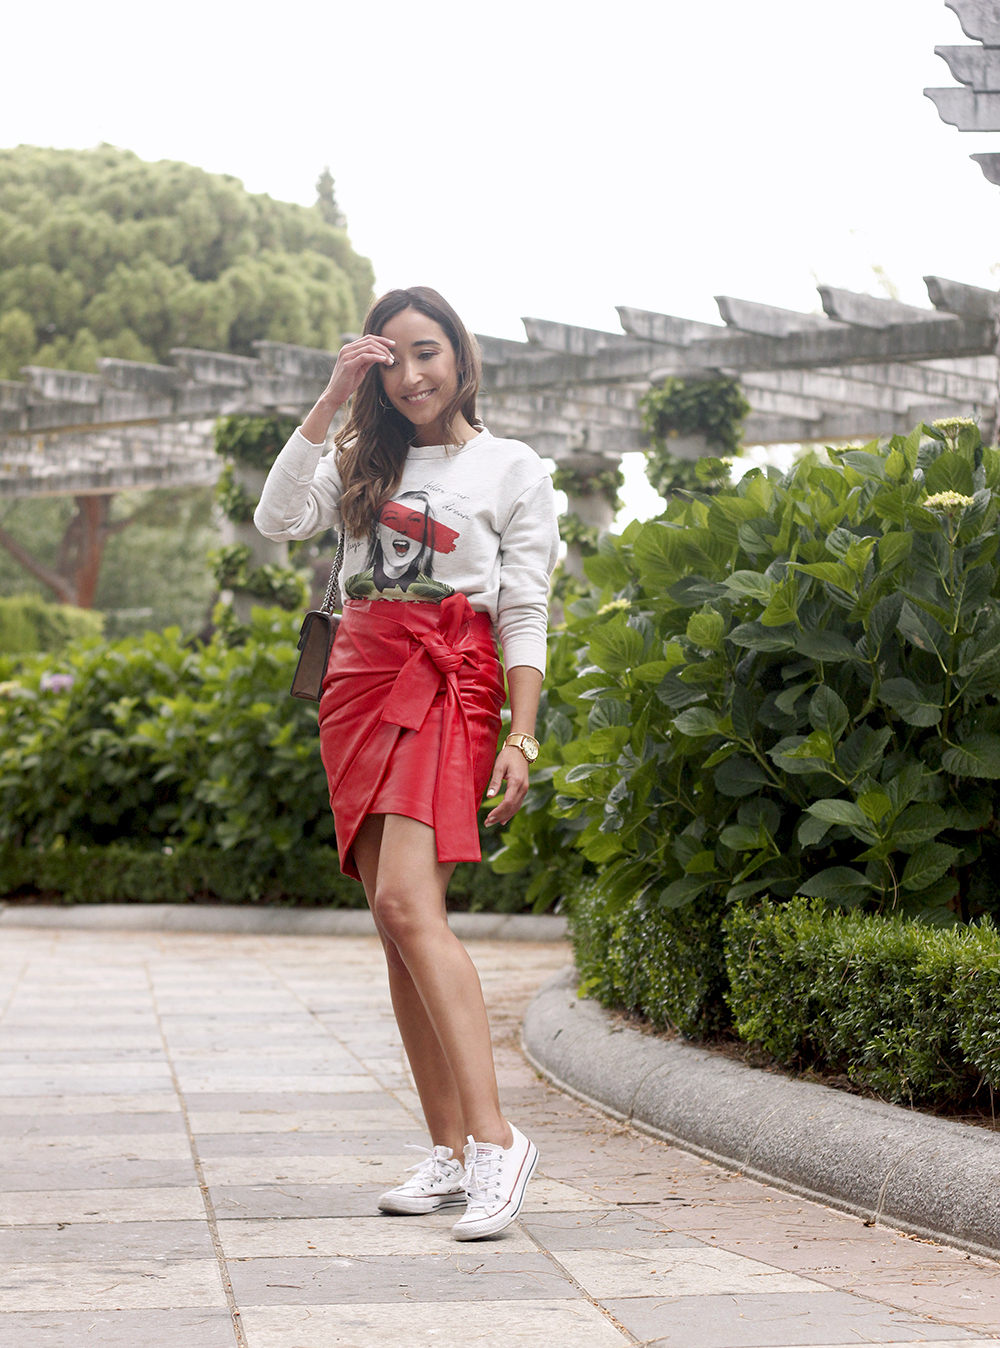 Red Leather Skirt kate moss sweatshirt converse gucci bag street style outfit 20191